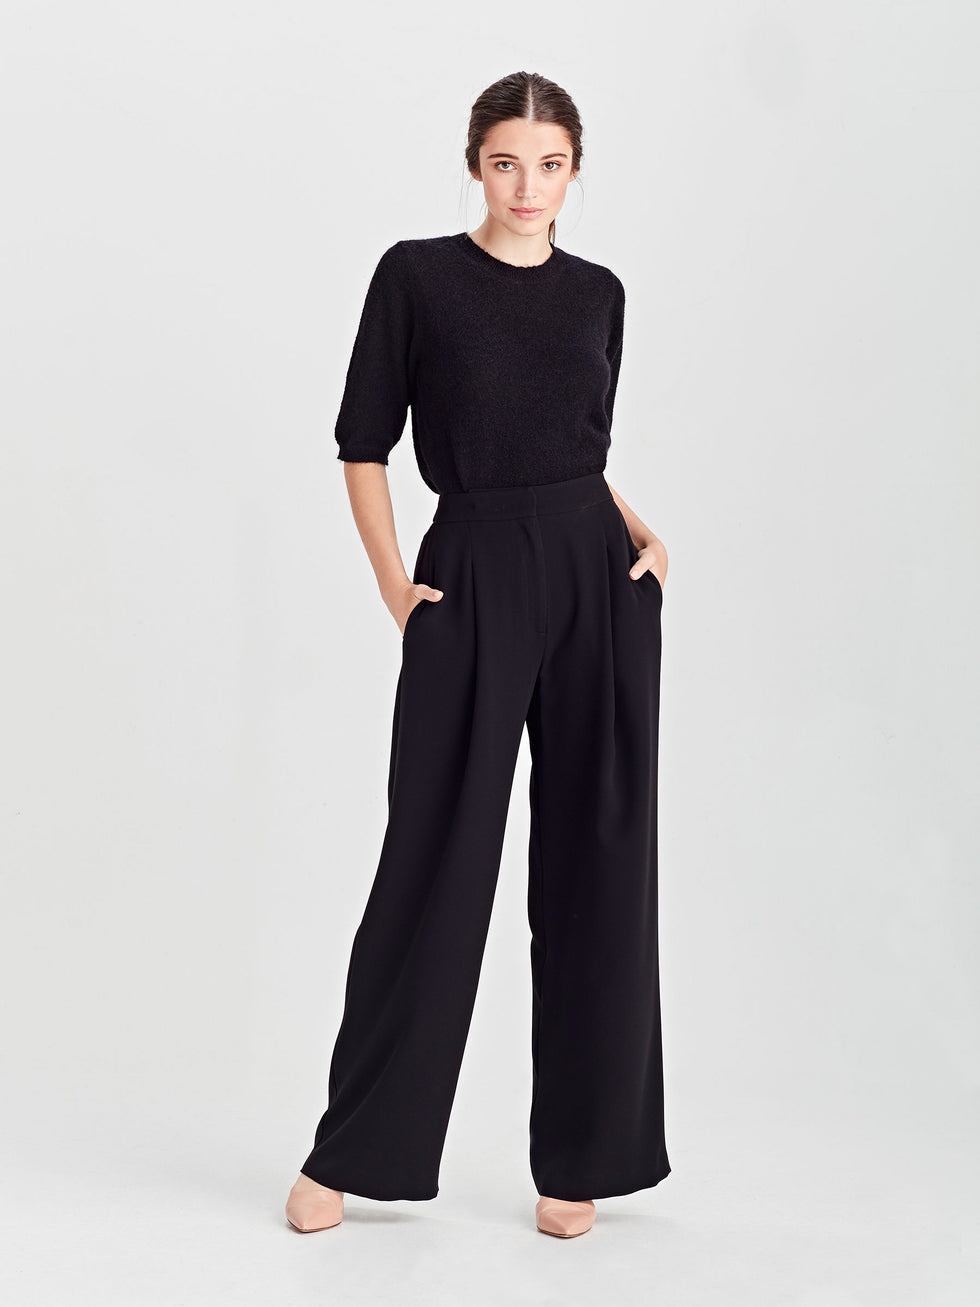 Calla Culotte (Luxe Triacetate) Black